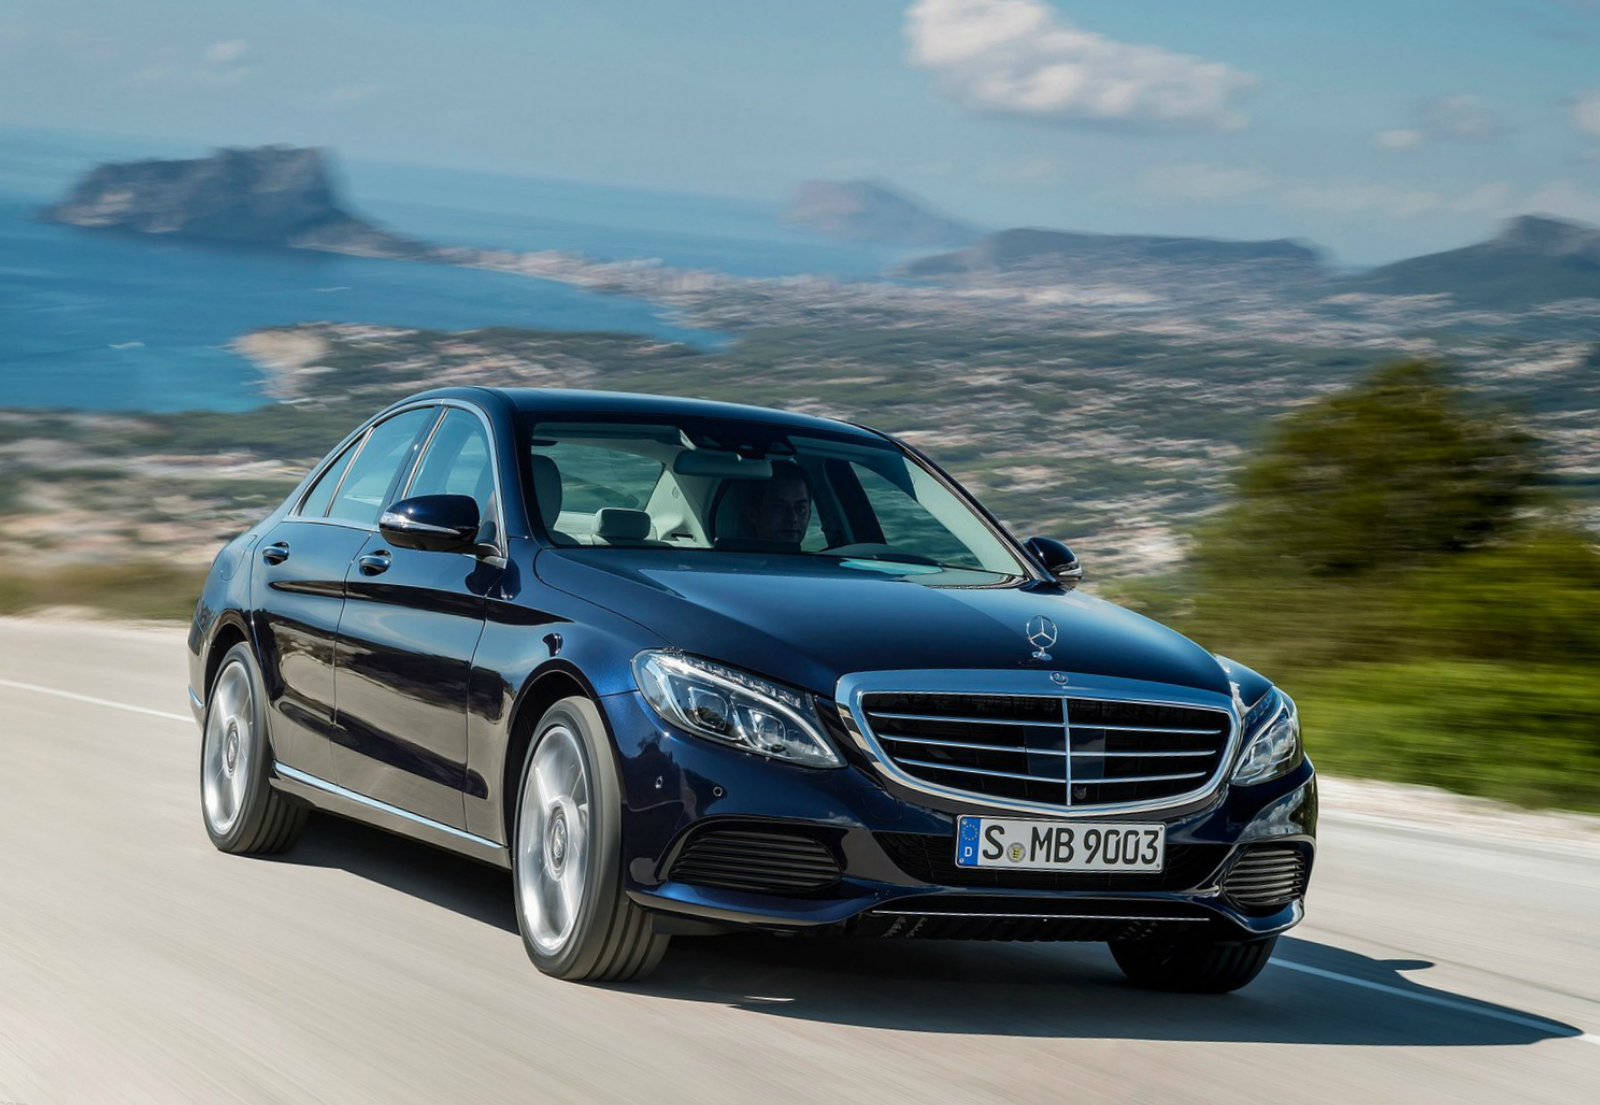 Mercedes benz c class 2015 reviews mercedes benz c class for How much are mercedes benz